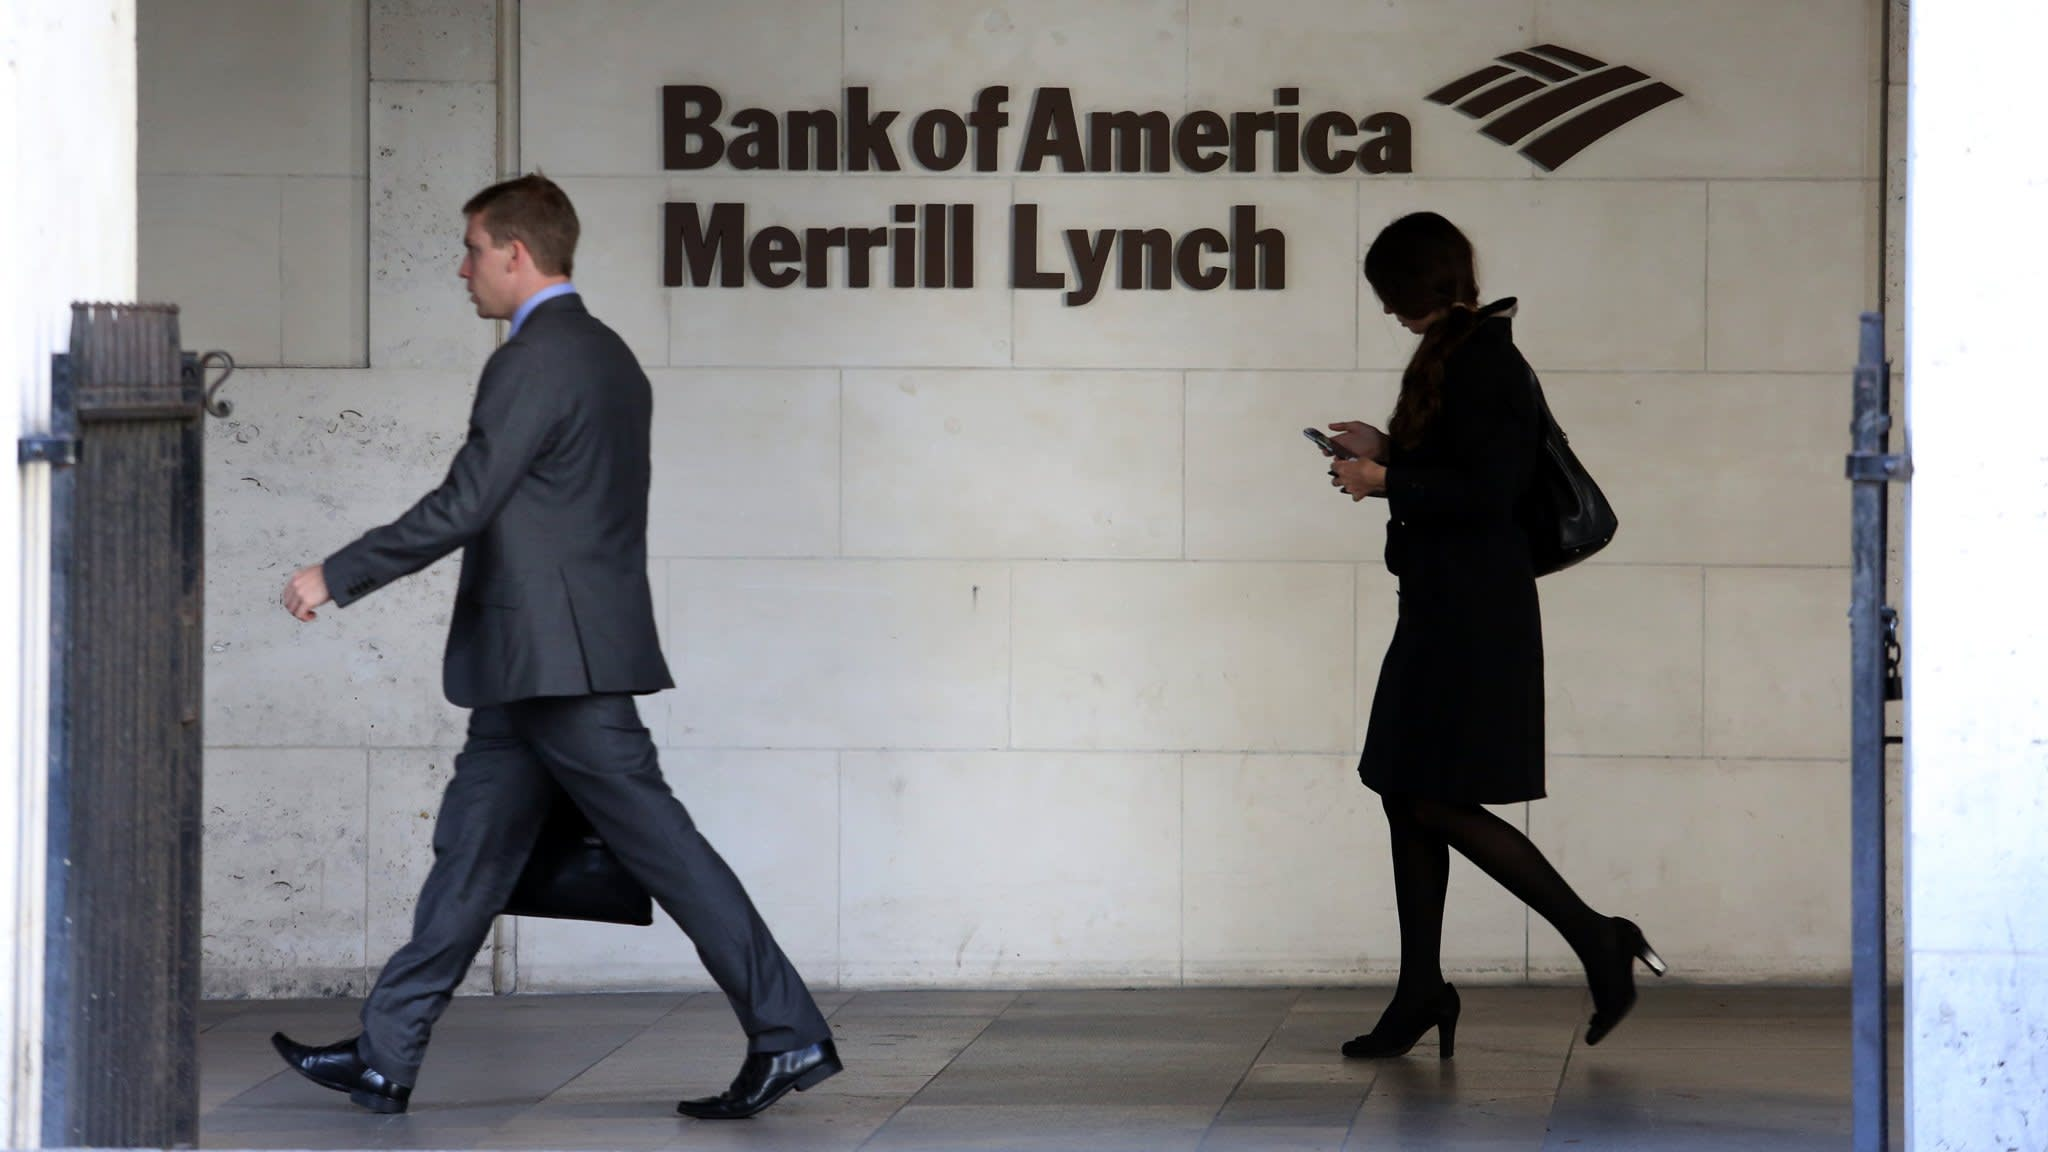 BofA loses analysts in London as Mifid rules bite